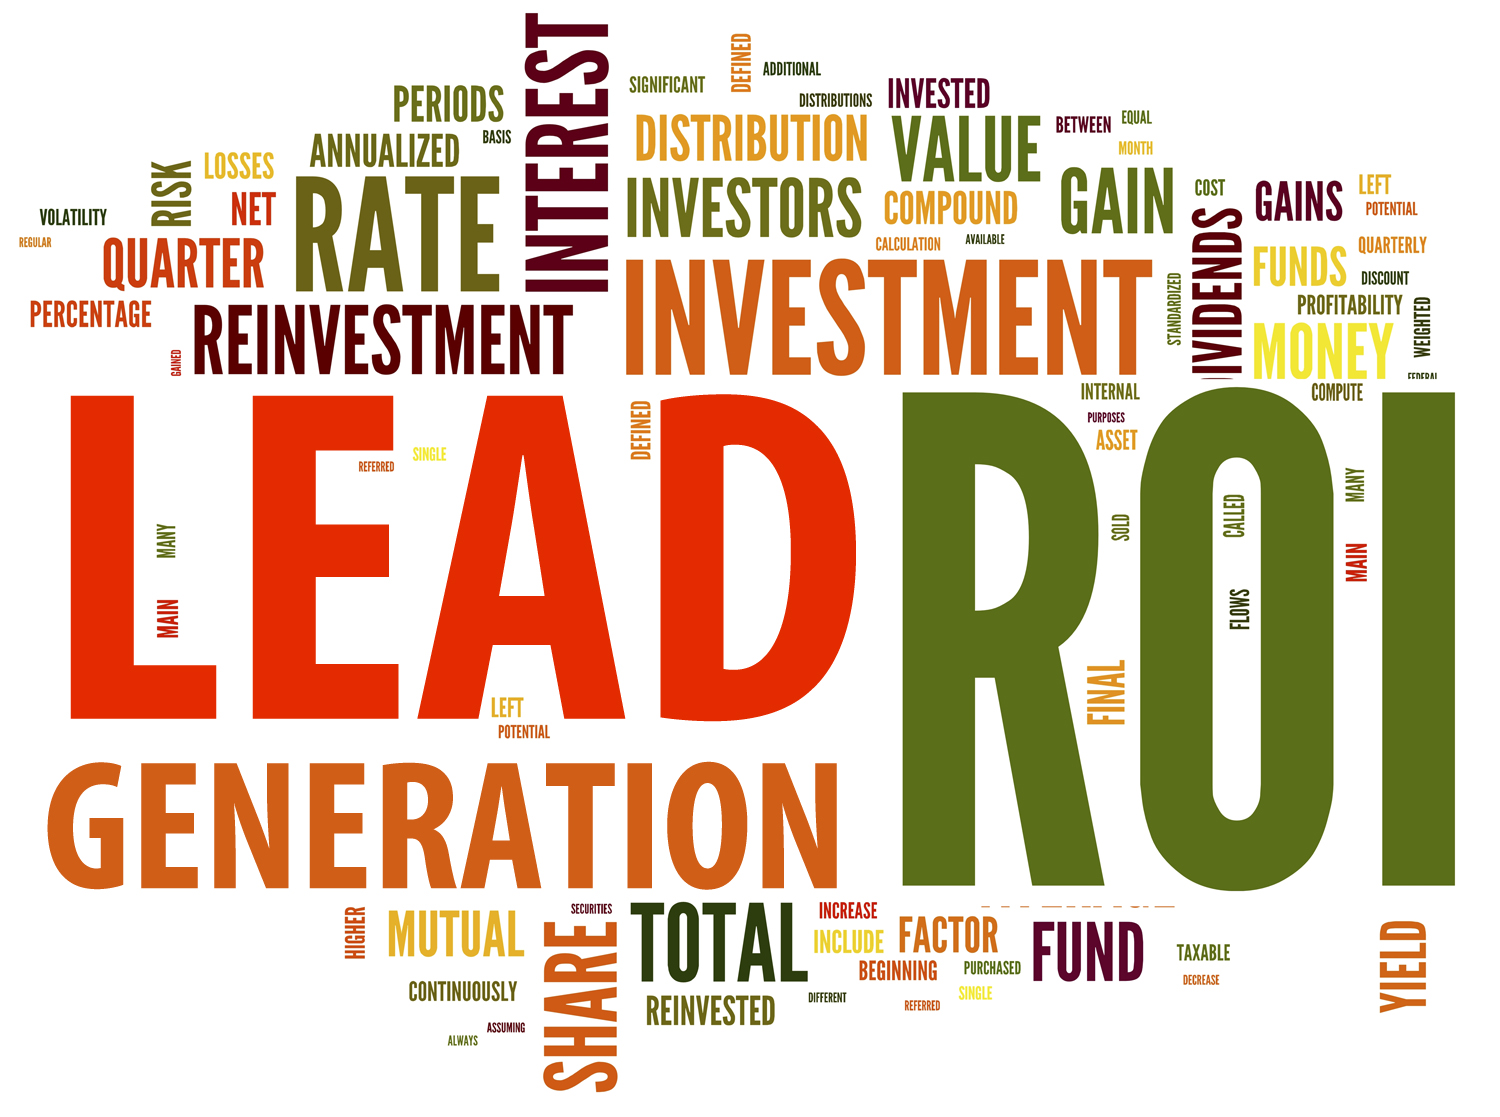 Affiliate & Lead Generation ROI increases 6% to £15 per £1 spent